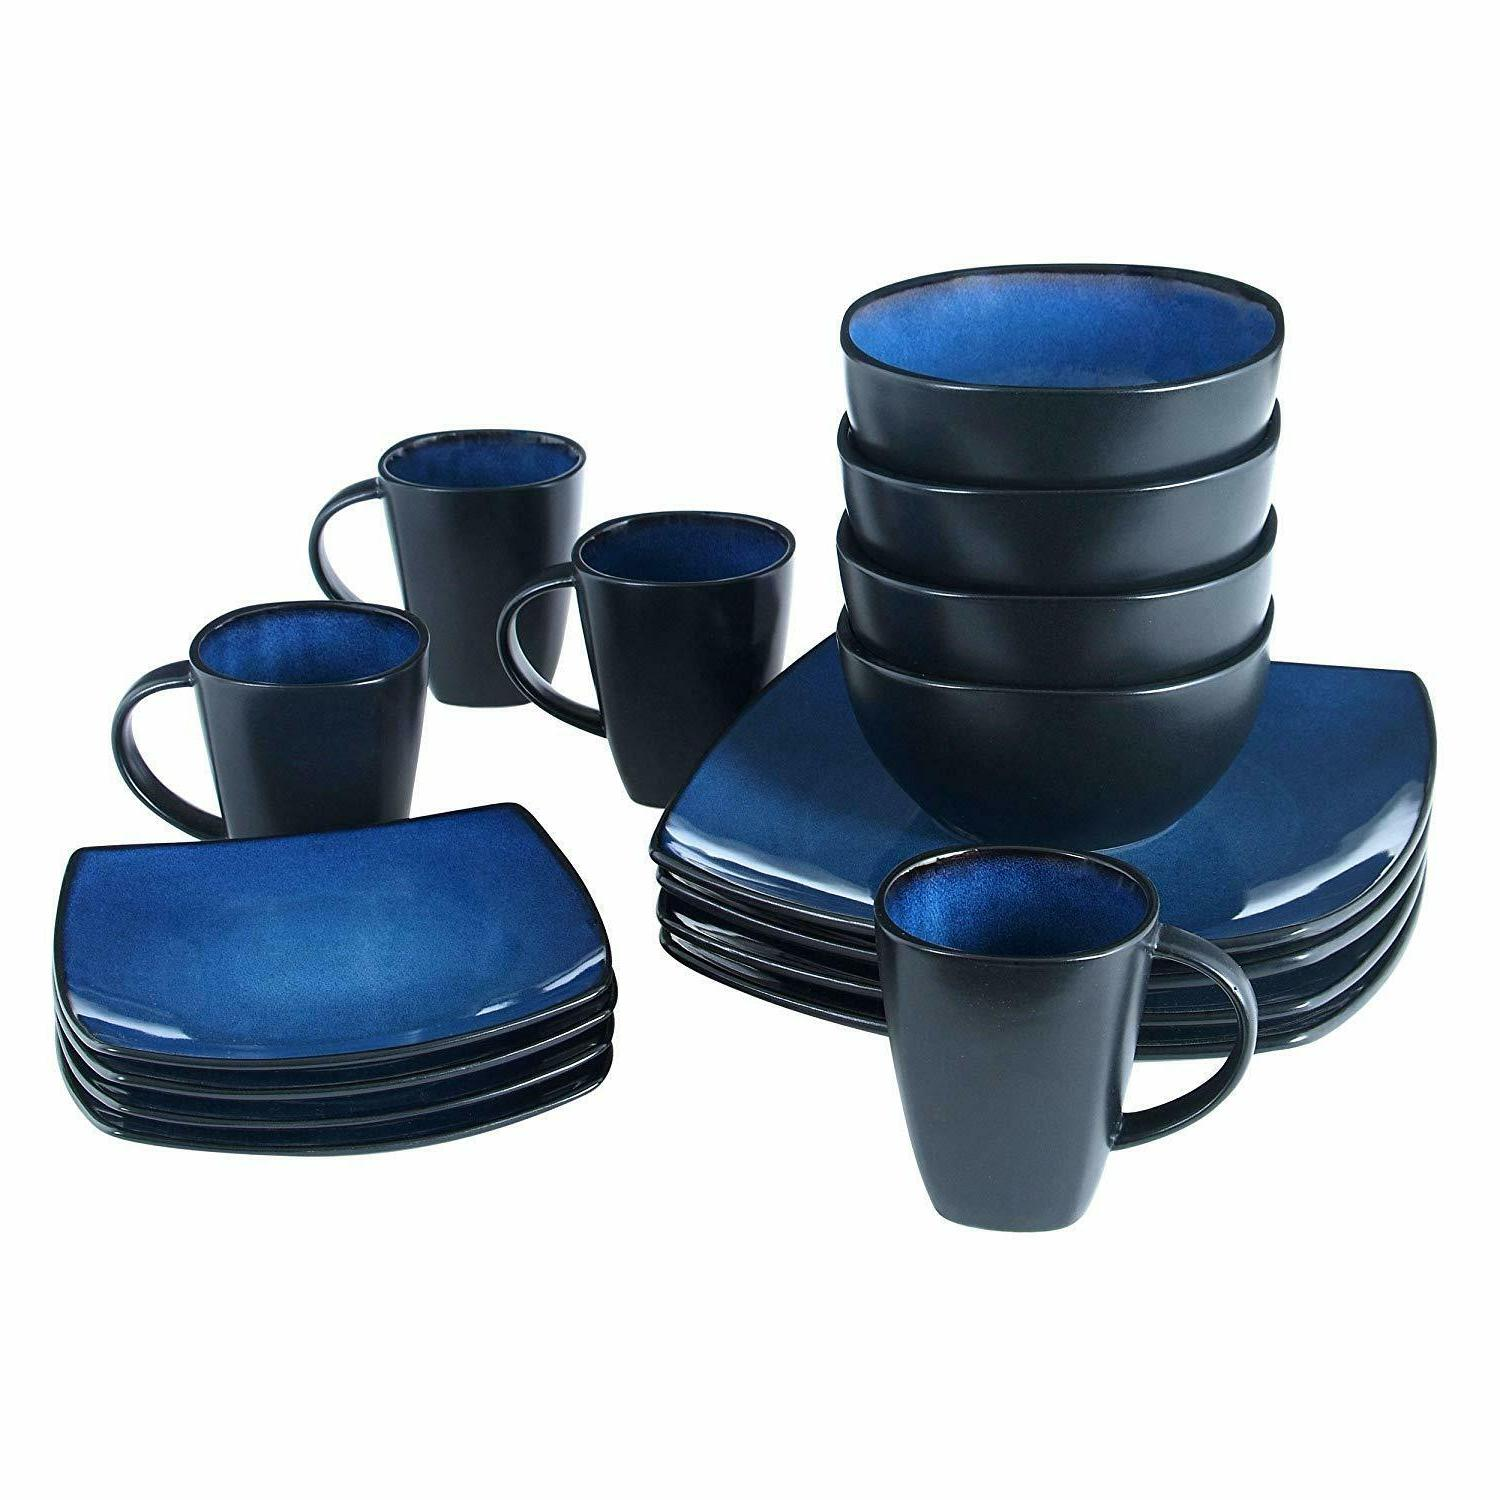 Dinnerware Plates Mugs Home Kitchen Lounge